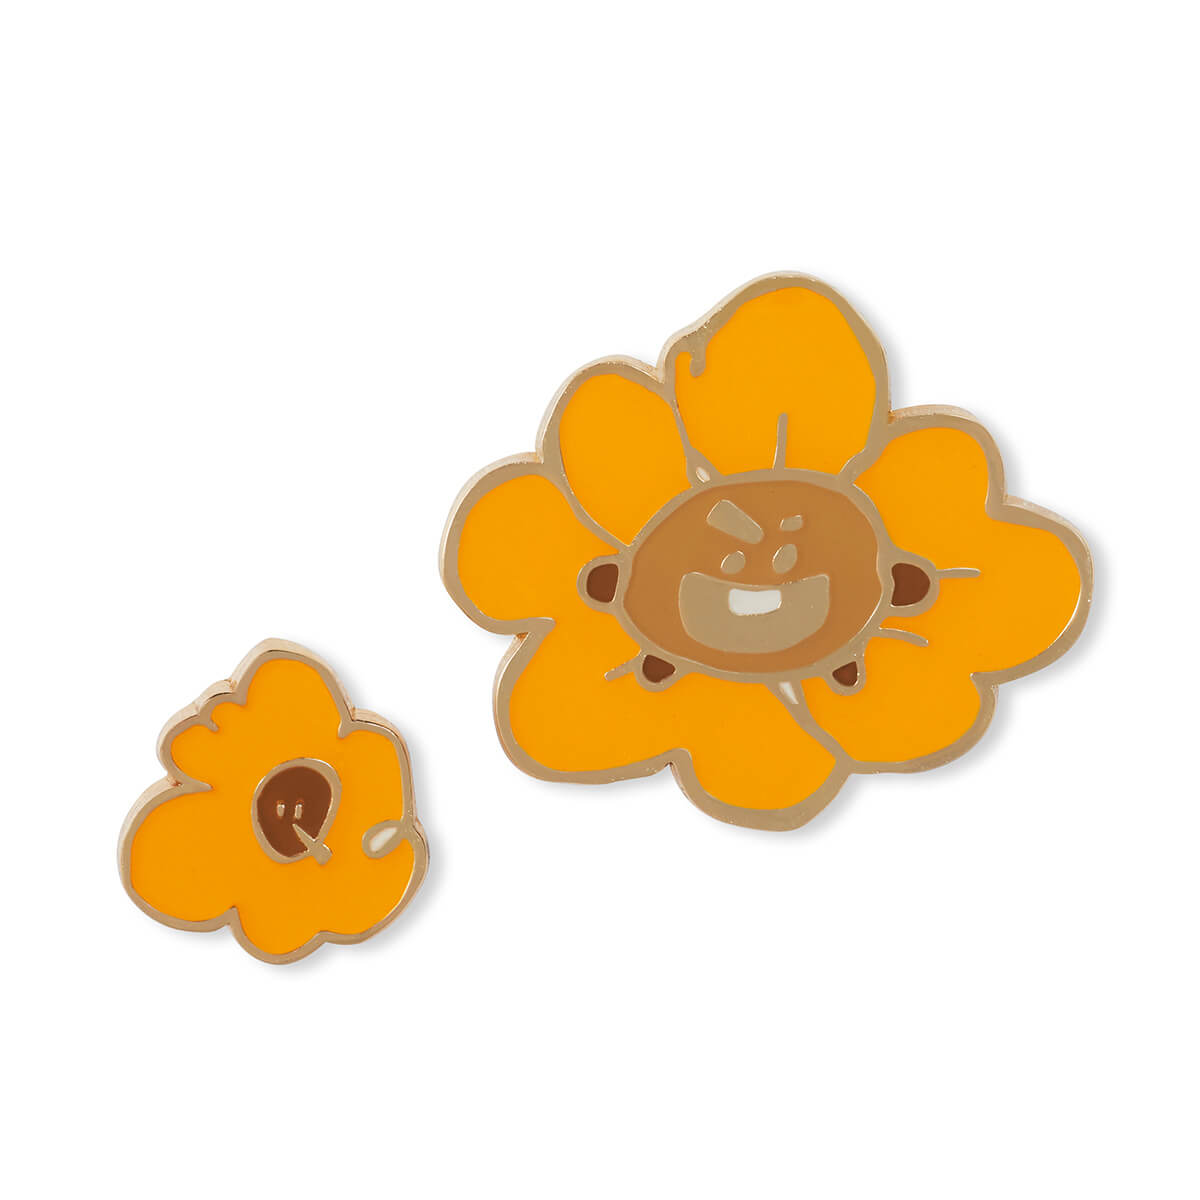 BT21 SHOOKY Flower Enamel Pin 2 Piece Set